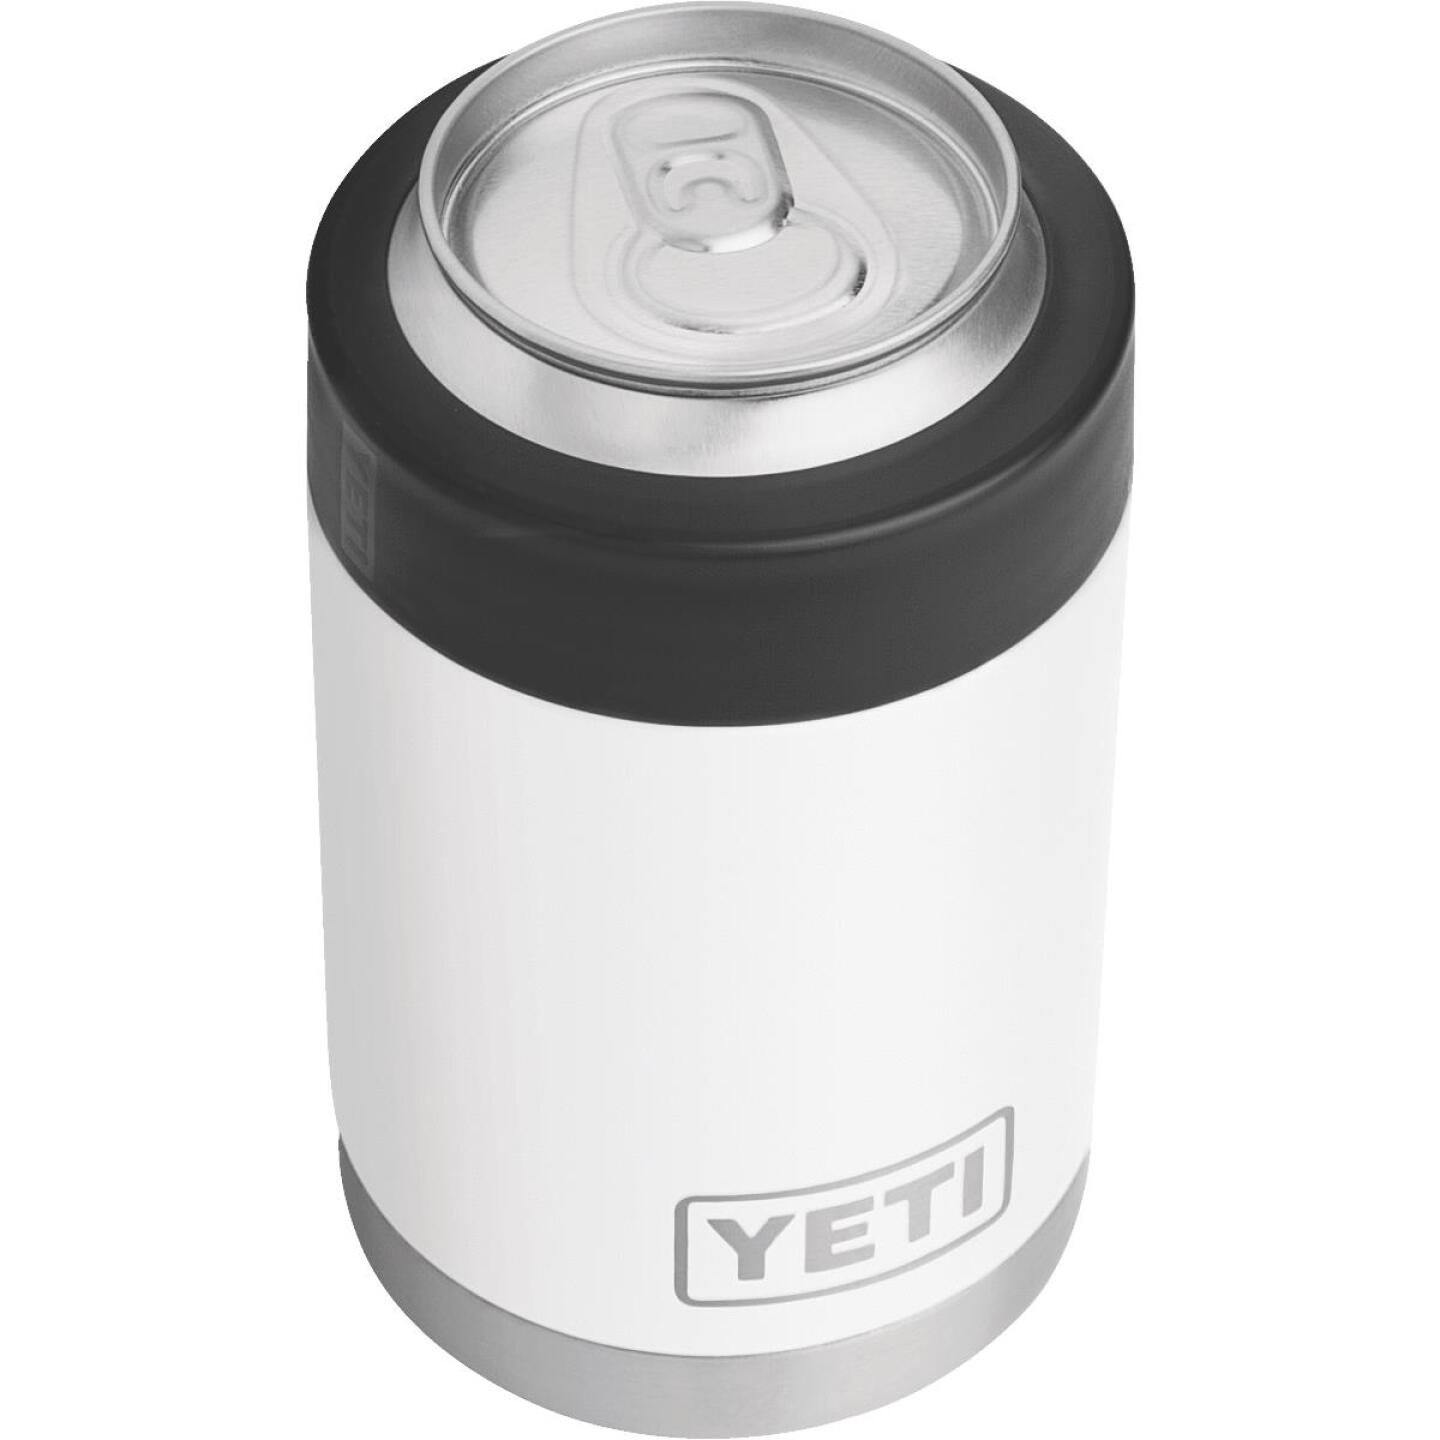 Yeti Rambler Colster 12 Oz. White Stainless Steel Insulated Drink Holder Image 2